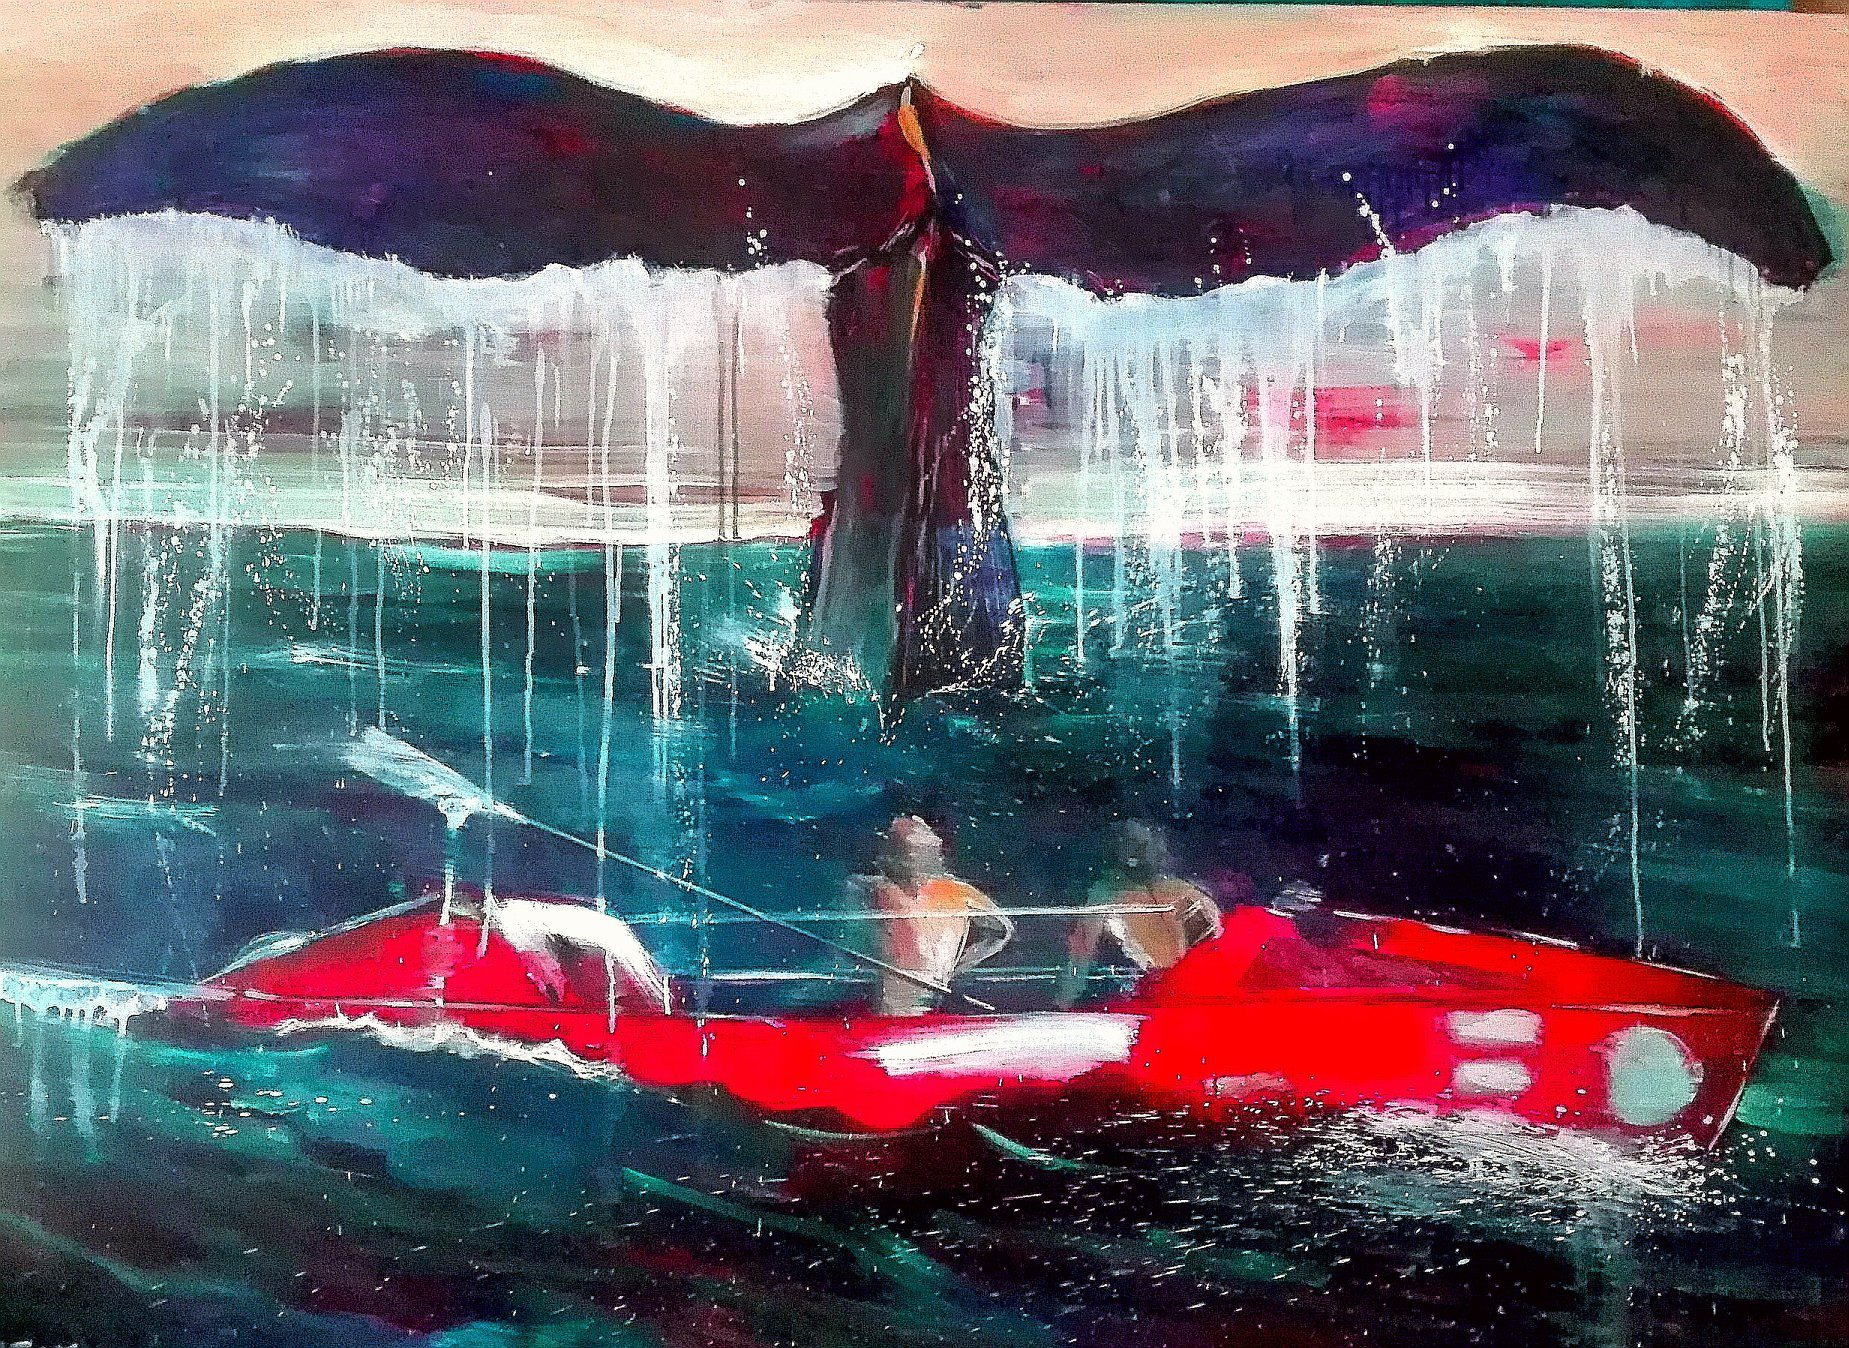 A remarkable painting (and my personal favourite) by Alfonso Andériz, Ballena - Whale, oil on canvas, 97 x 130cm - 2018